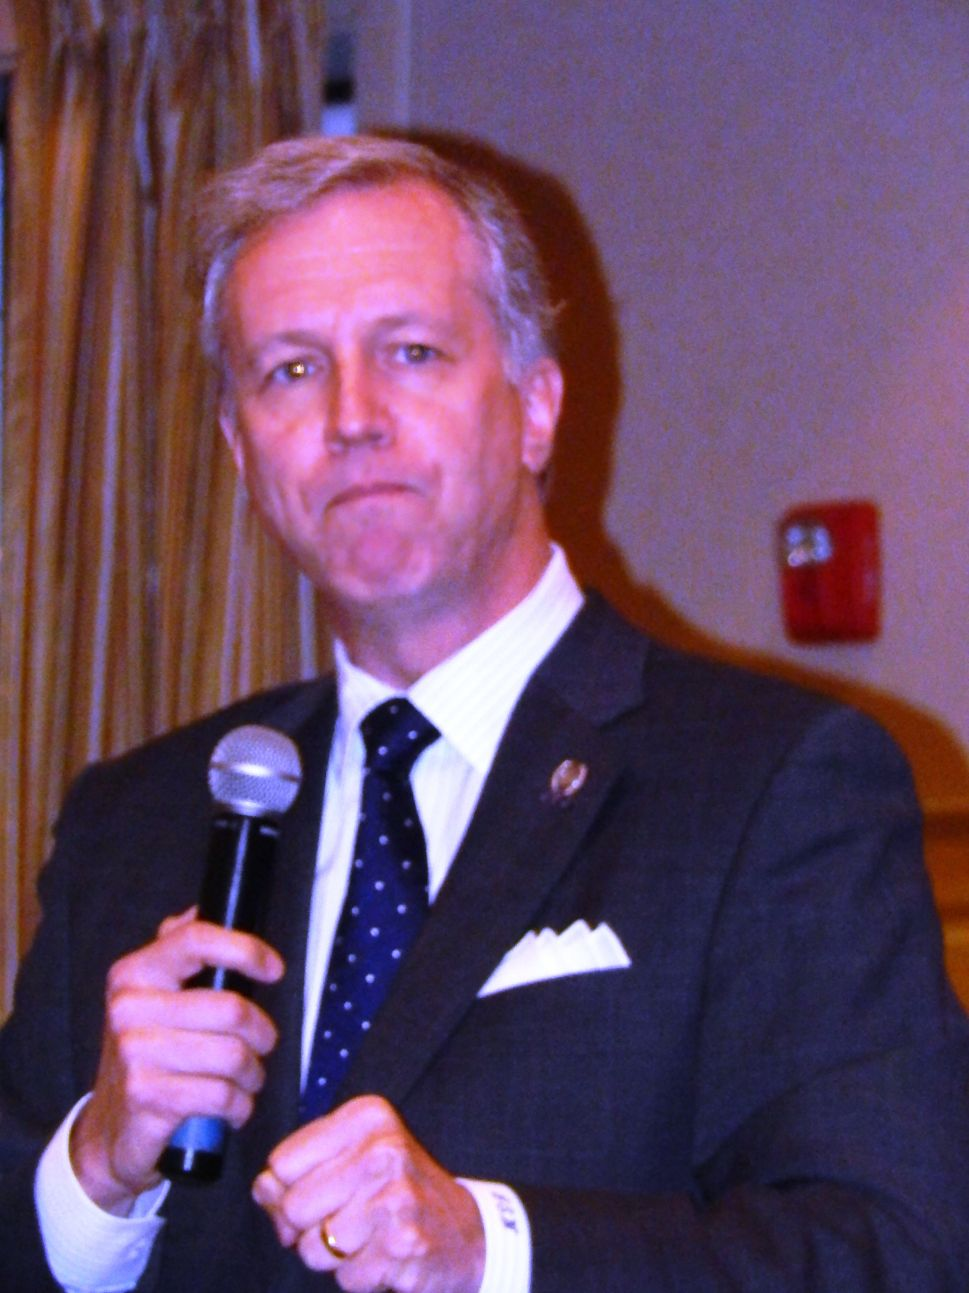 Wisniewski hopes to hear answers to unanswered Bridgegate questions